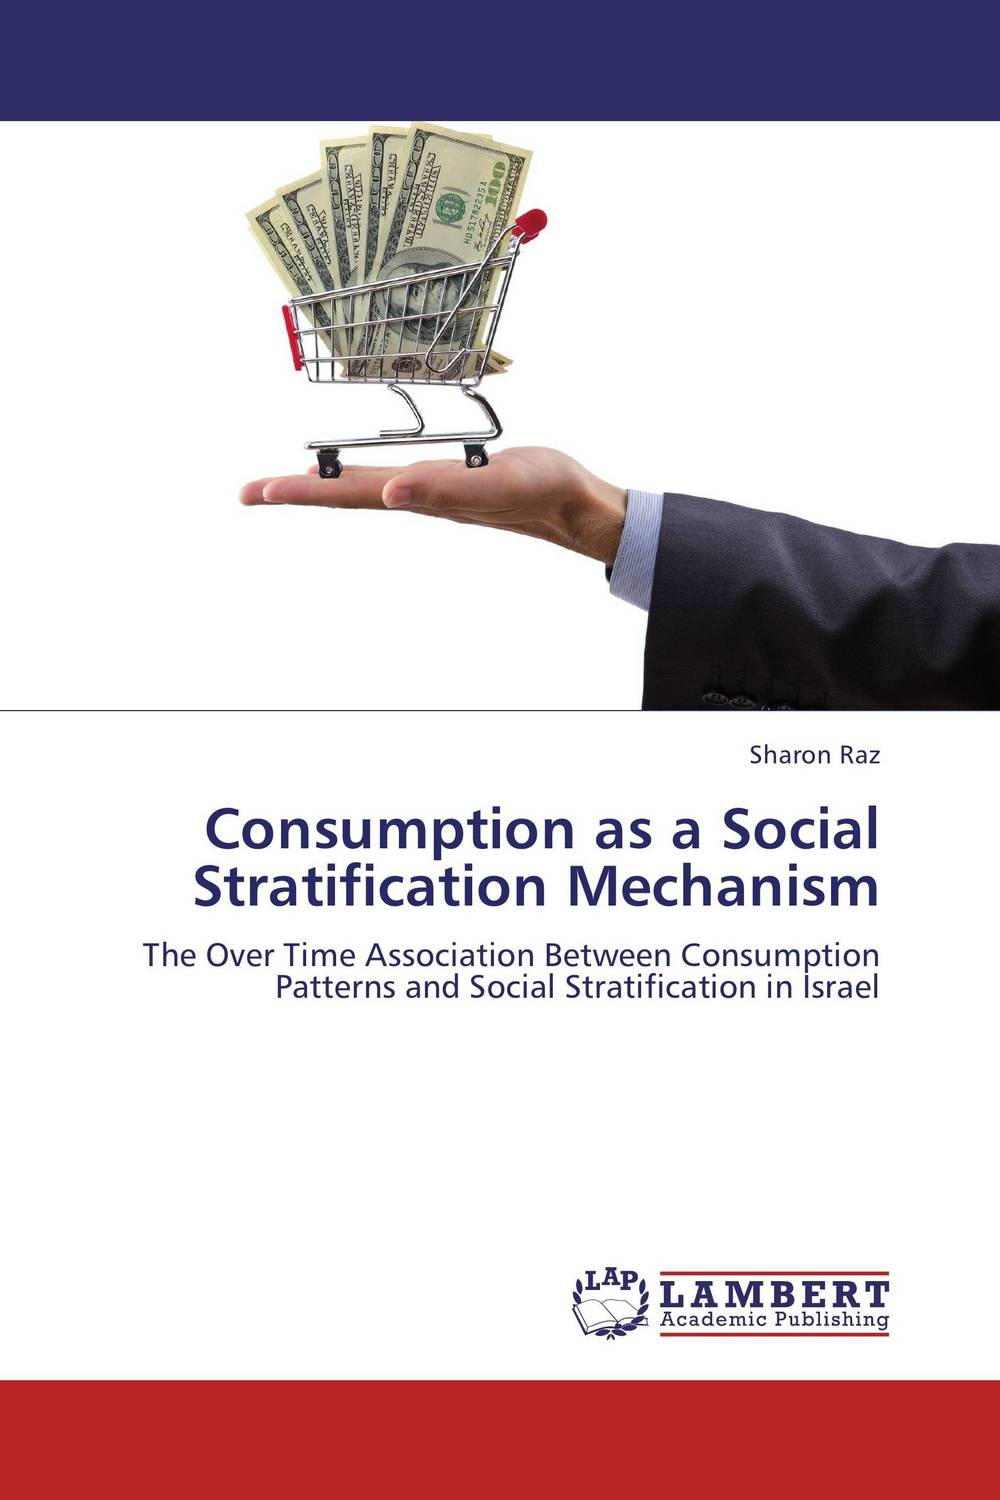 все цены на Consumption as a Social Stratification Mechanism